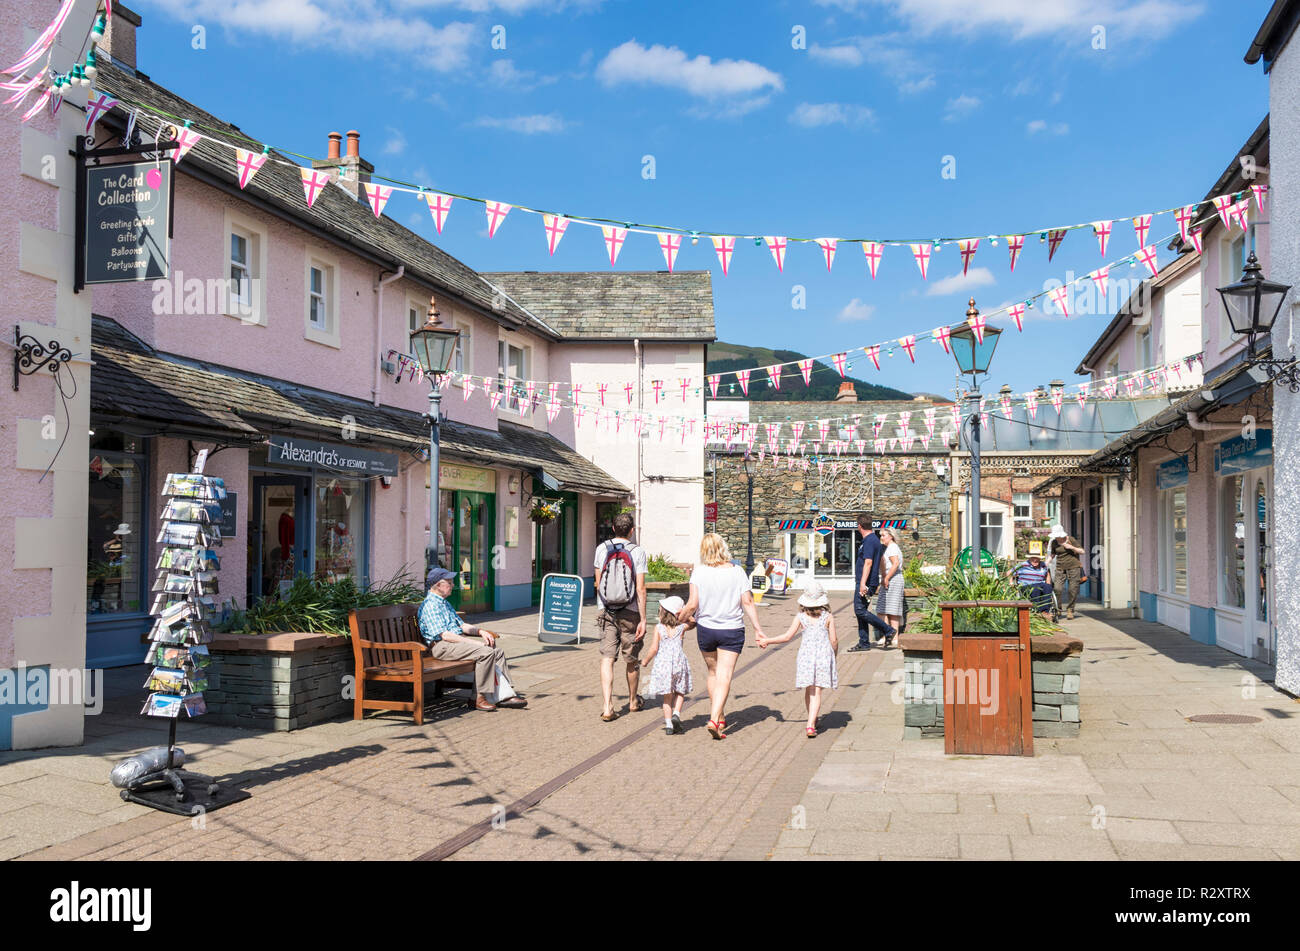 Lake district UK Keswick Lake District people shopping in Packhourse court an enclosed courtyard of shops in Keswick Cumbria England GB UK Europe - Stock Image